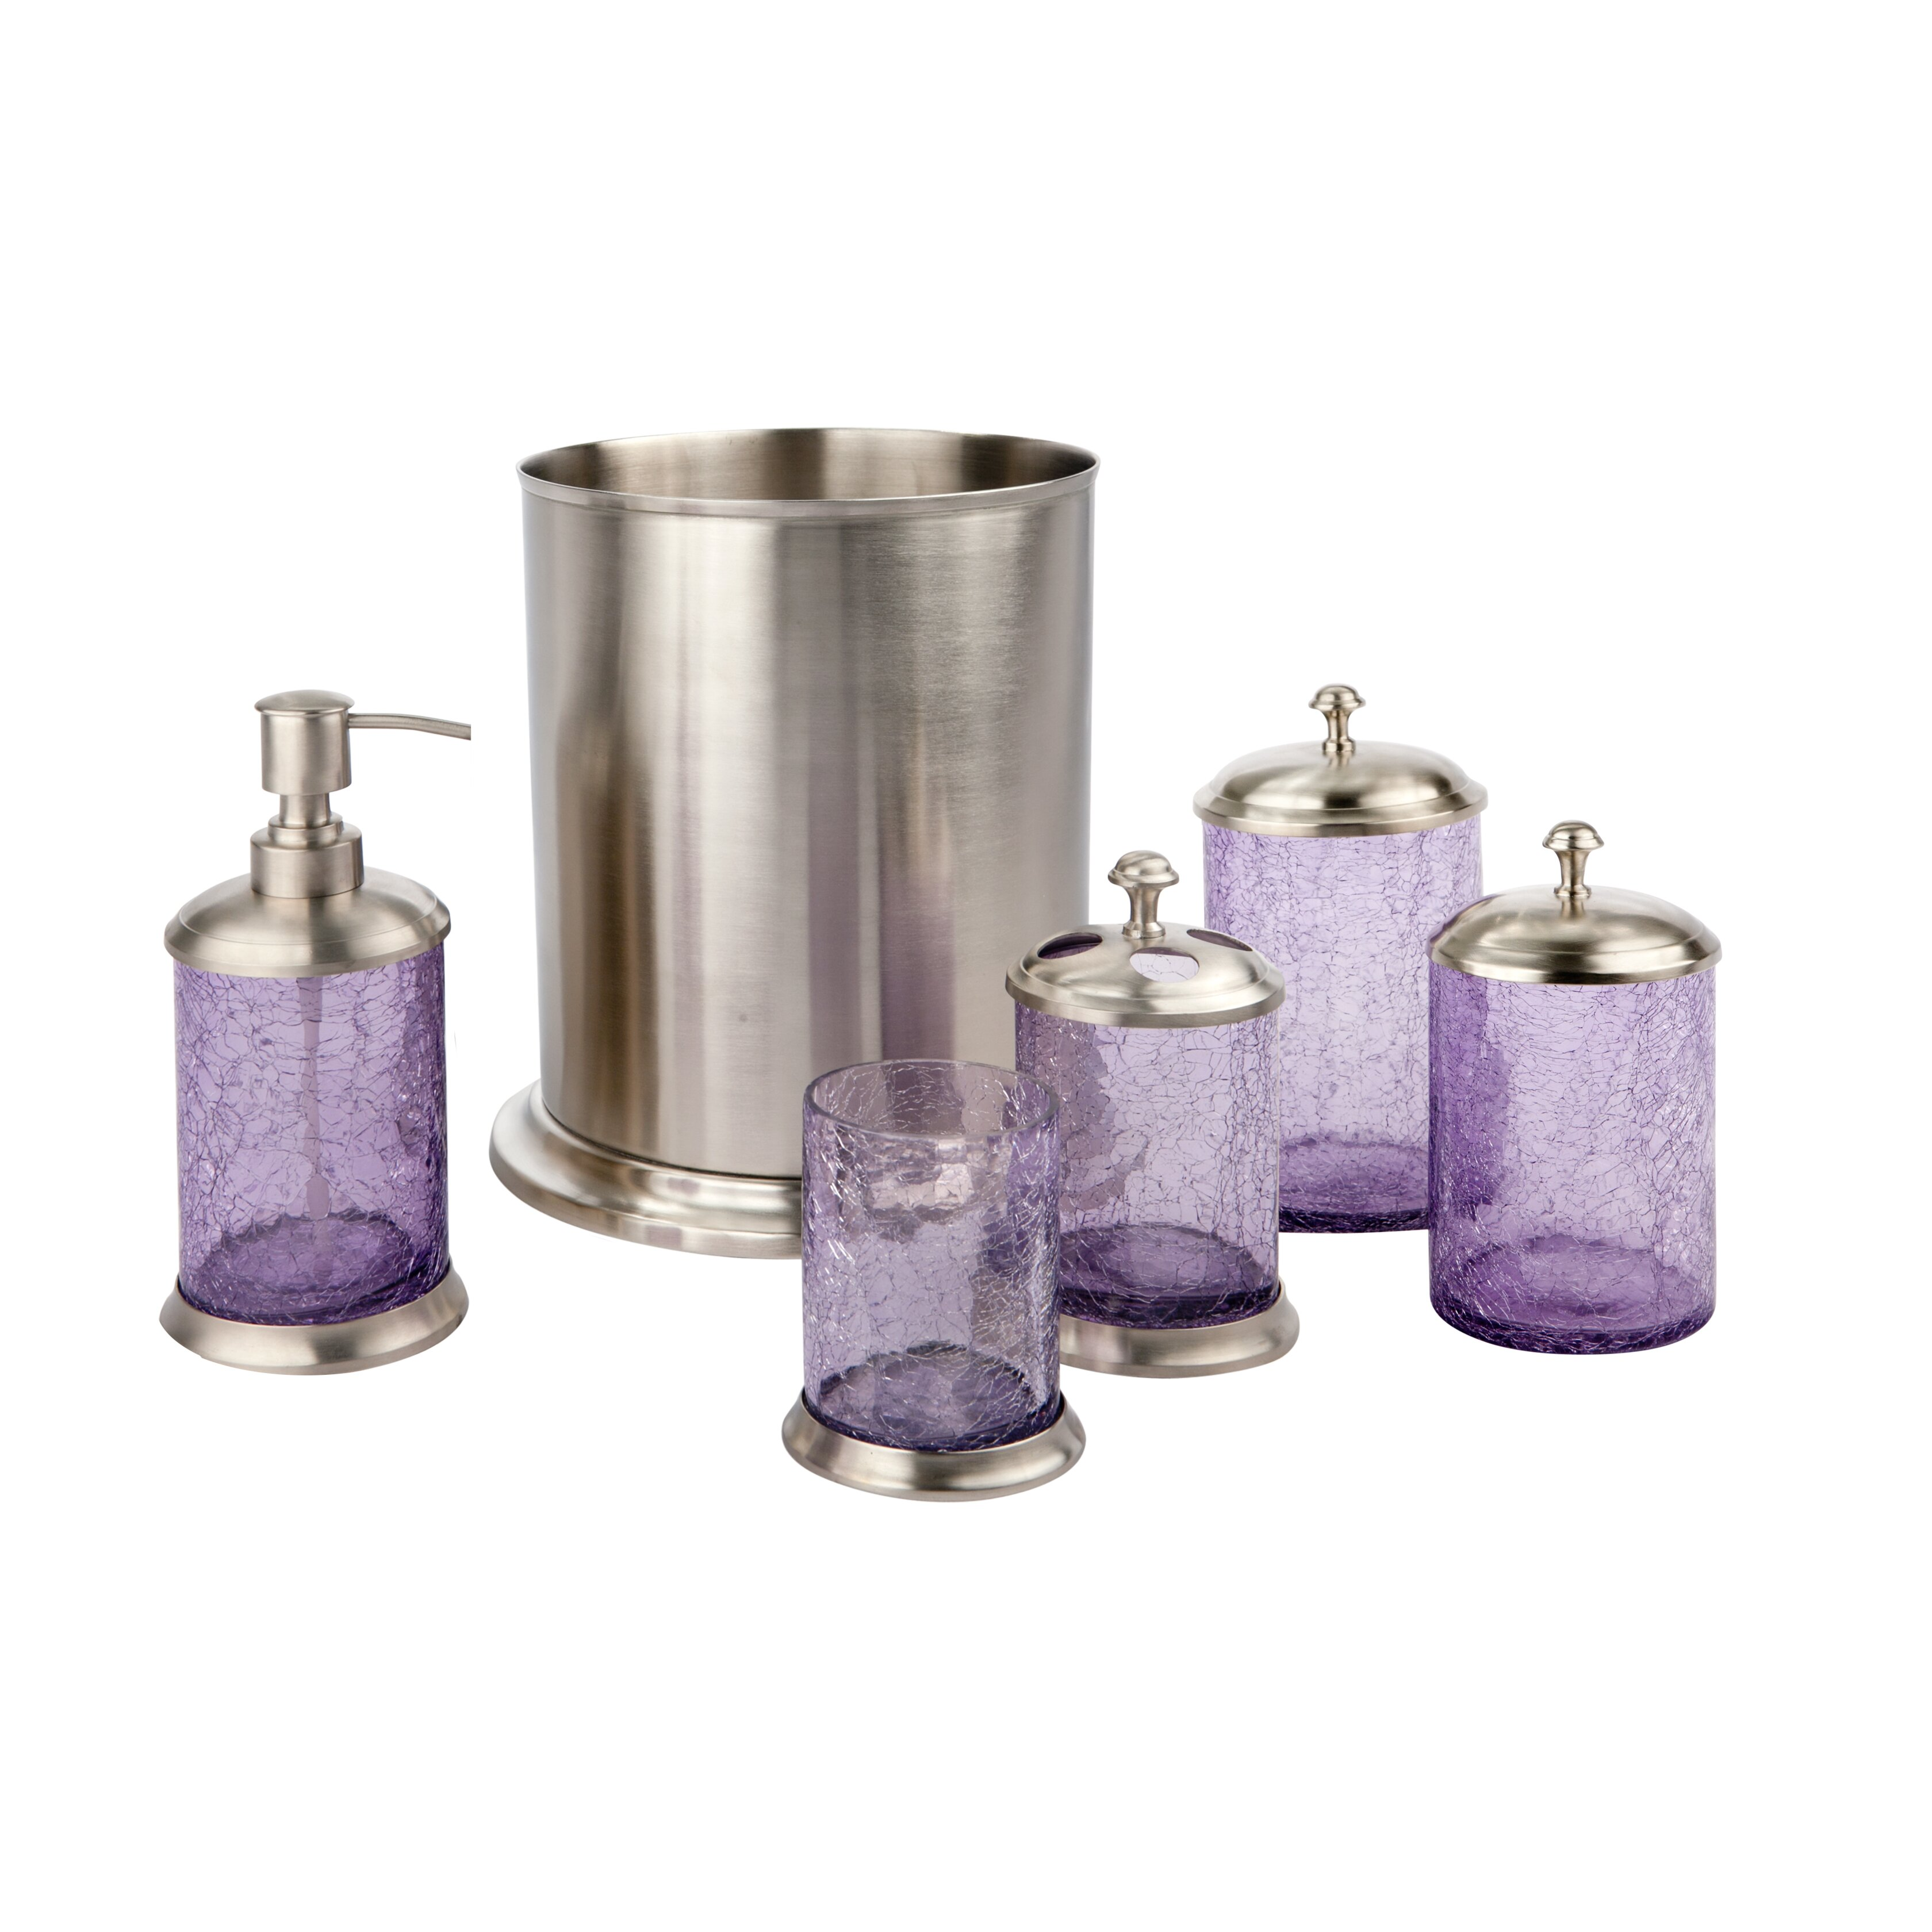 Paradigm trends lilac 6 piece bathroom accessory set amp reviews